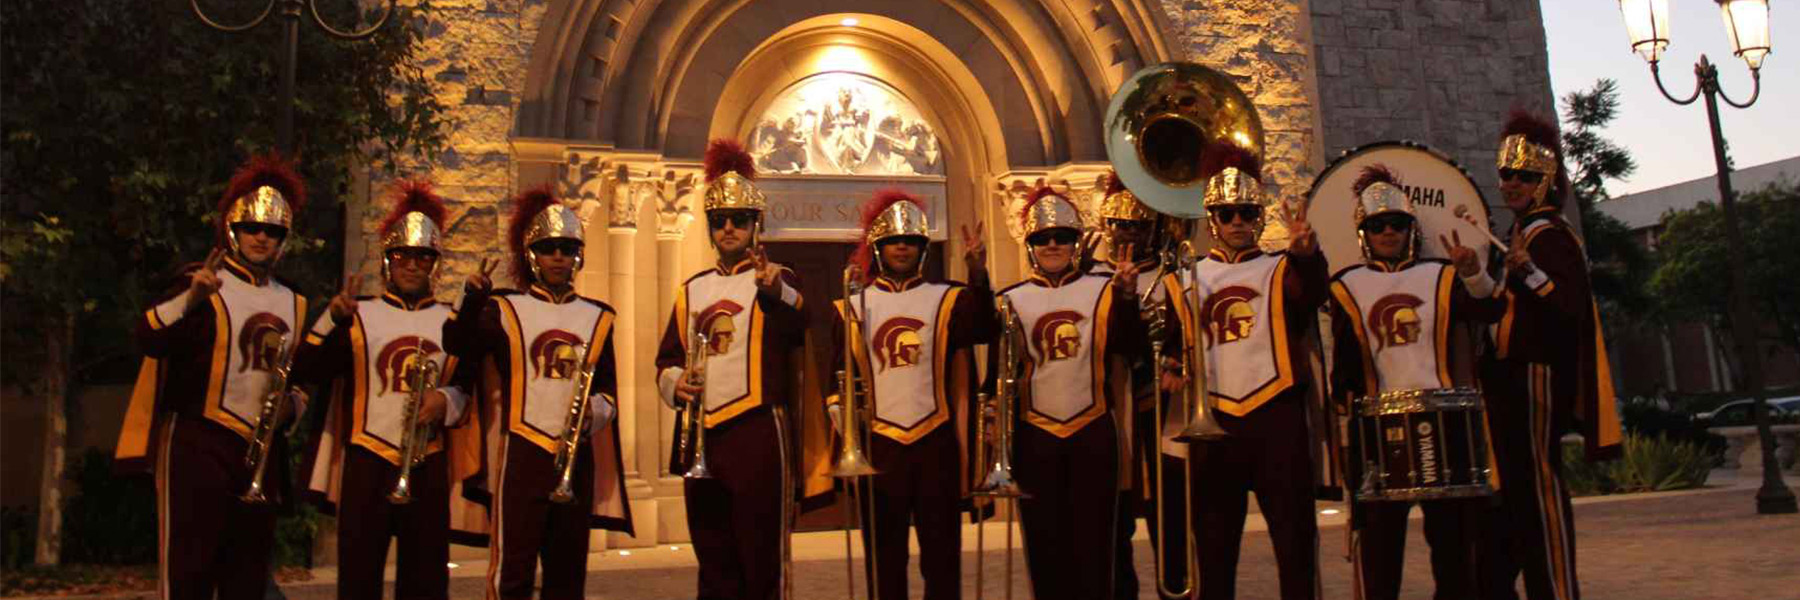 Group of band students wearing uniforms